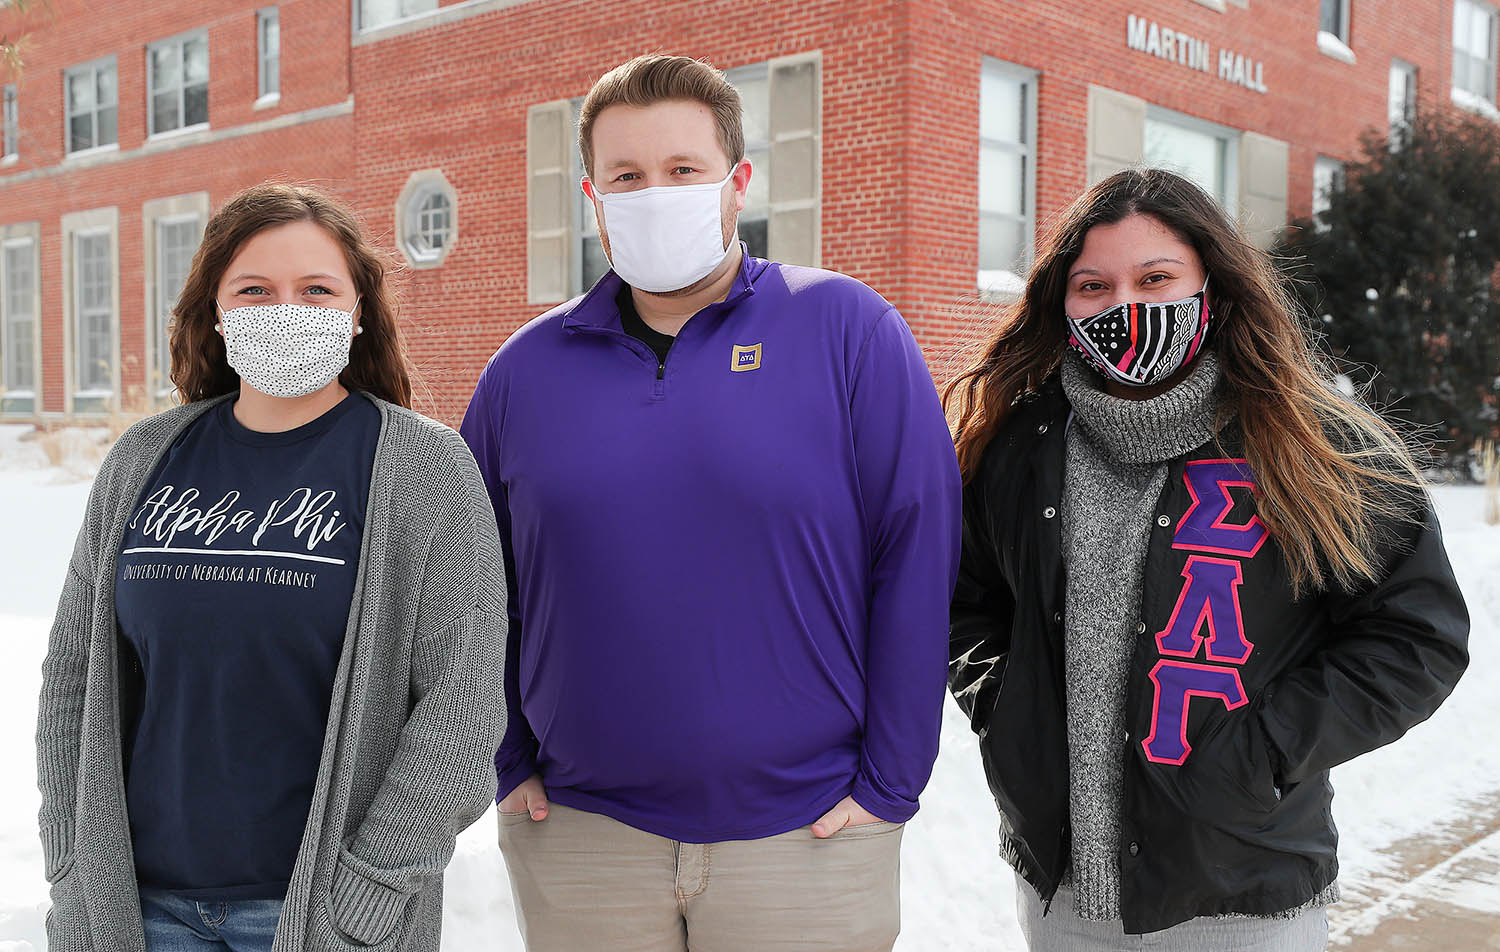 UNK Fraternity and Sorority Life members, from left, Justine Johnson of Holdrege, Brady Deprez of Omaha and Gracie Lopez of Hastings pose for a photo outside Martin Hall. A project approved Friday will replace the current fraternity and sorority housing on campus through a renovation of Martin Hall and construction of a new residence hall just north of that building. (Photo by Erika Pritchard, UNK Communications)